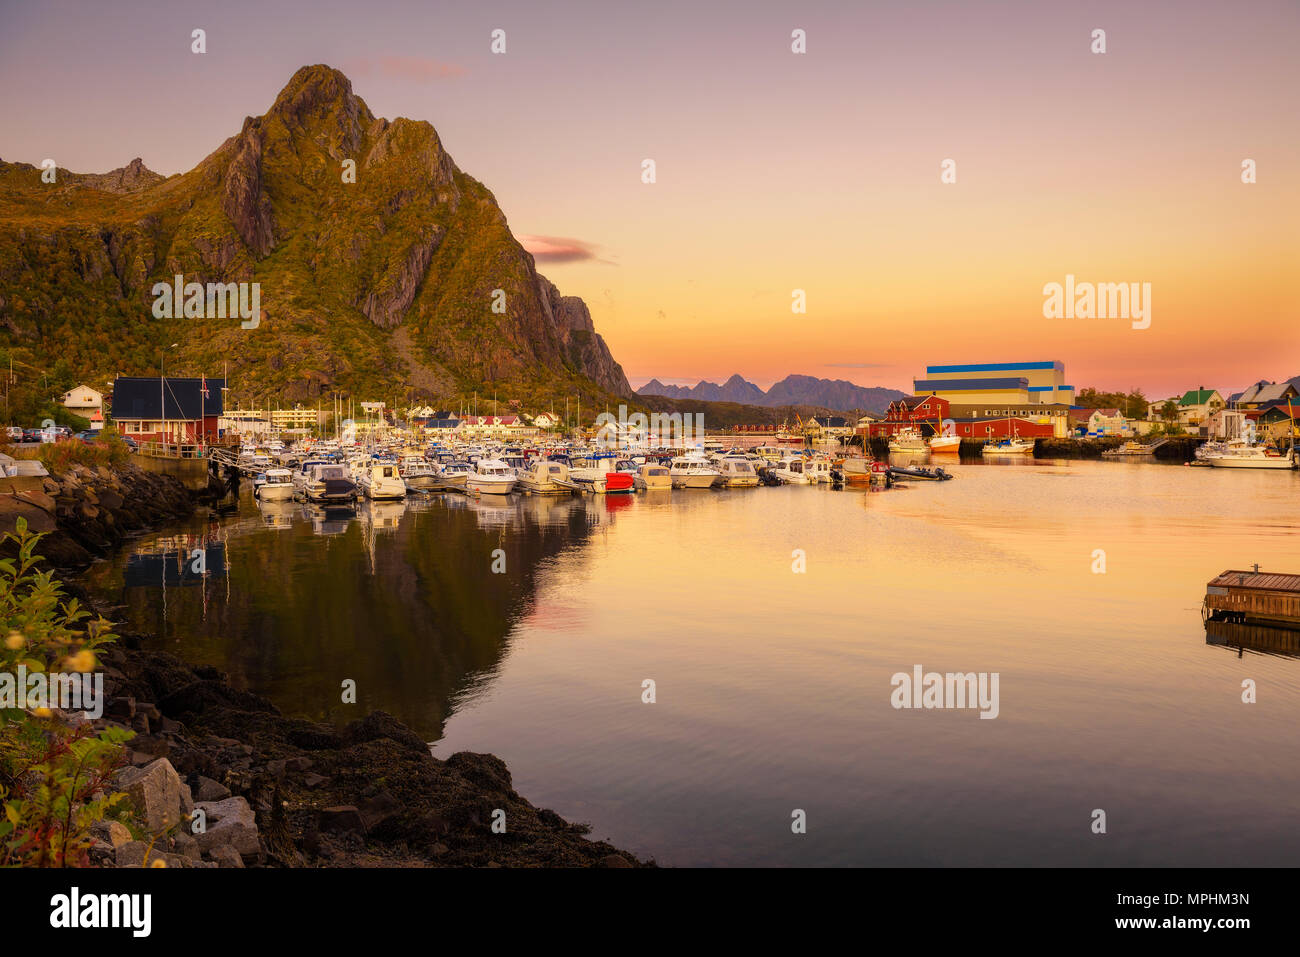 Many yachts anchored at the Marina of Svolvaer on Lofoten islands - Stock Image